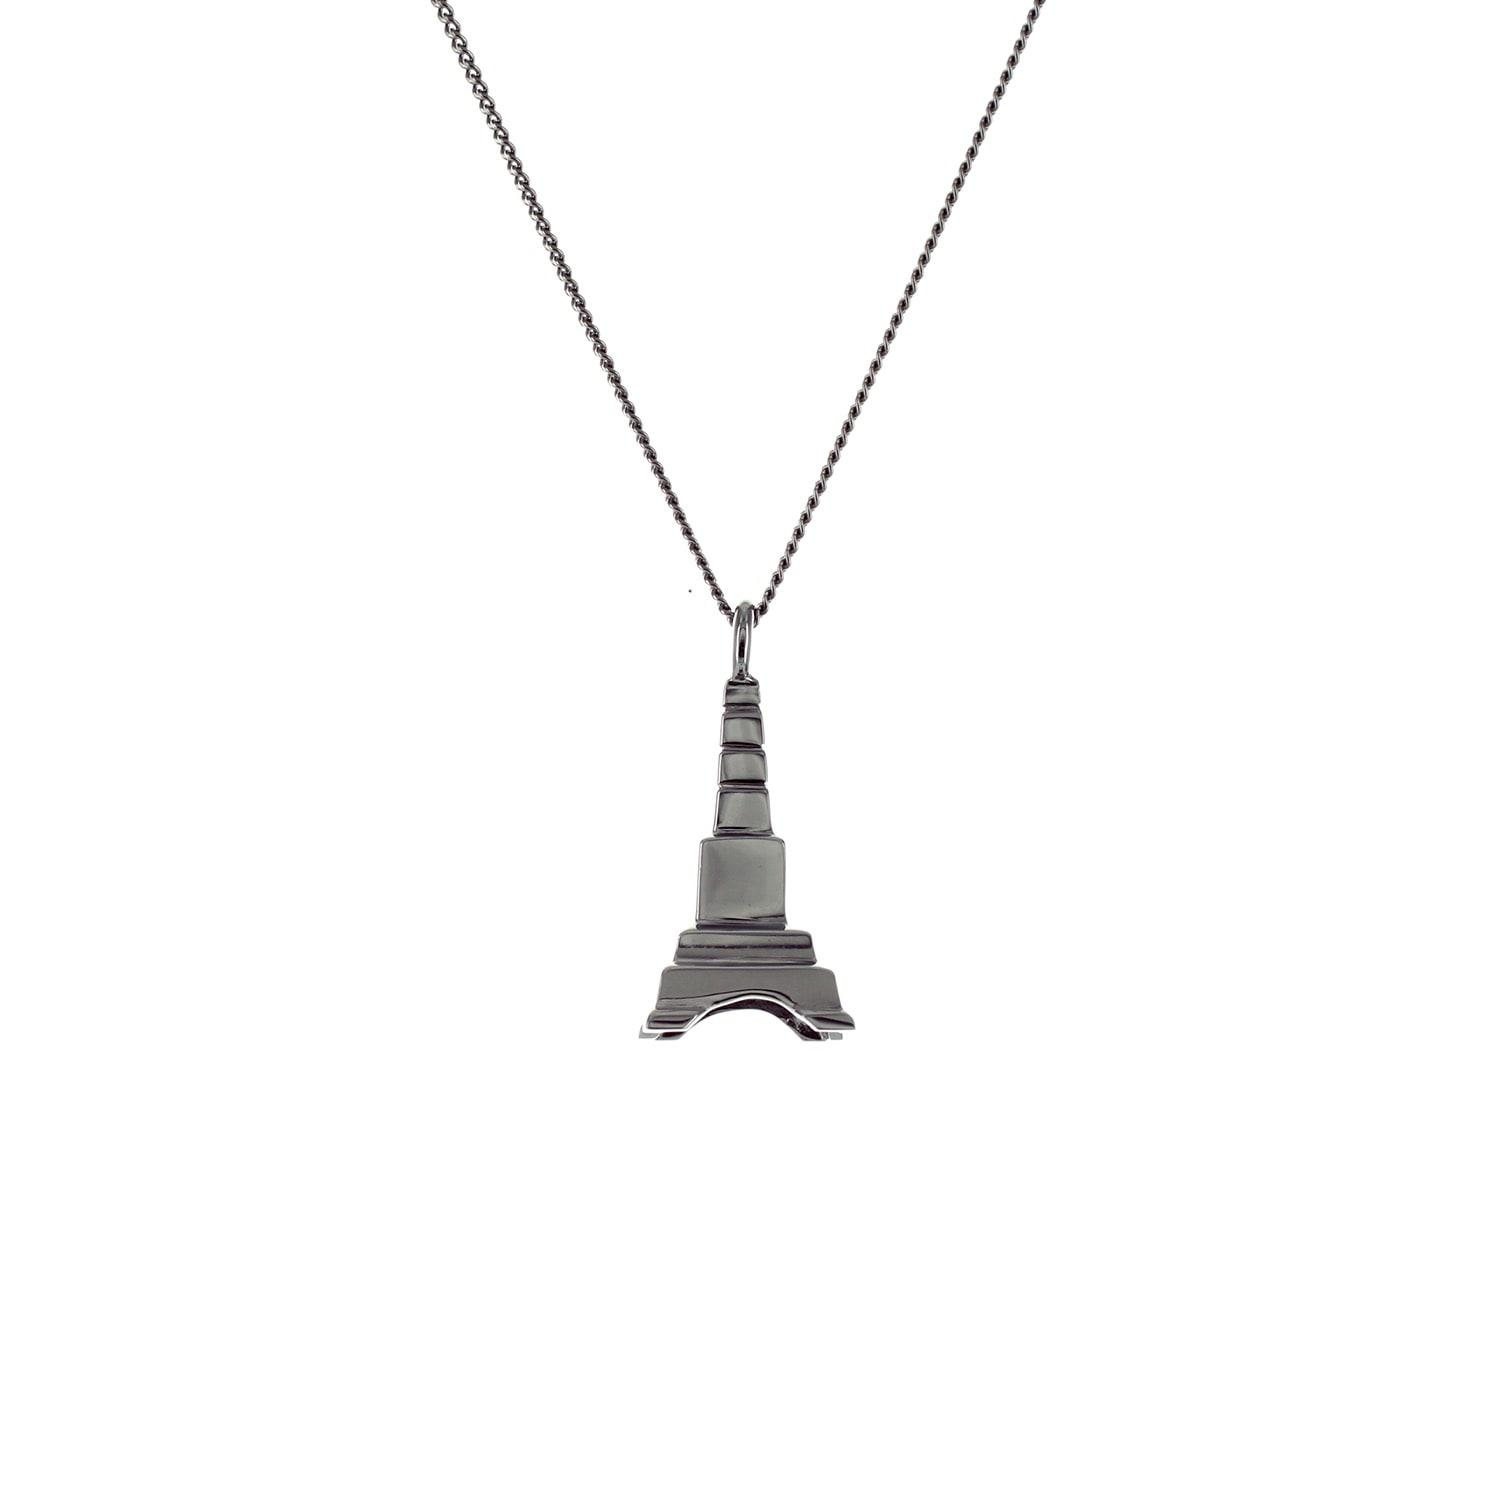 Origami Jewellery Sterling Silver Mini Eiffel Tower Origami Necklace NLgbbvzC9